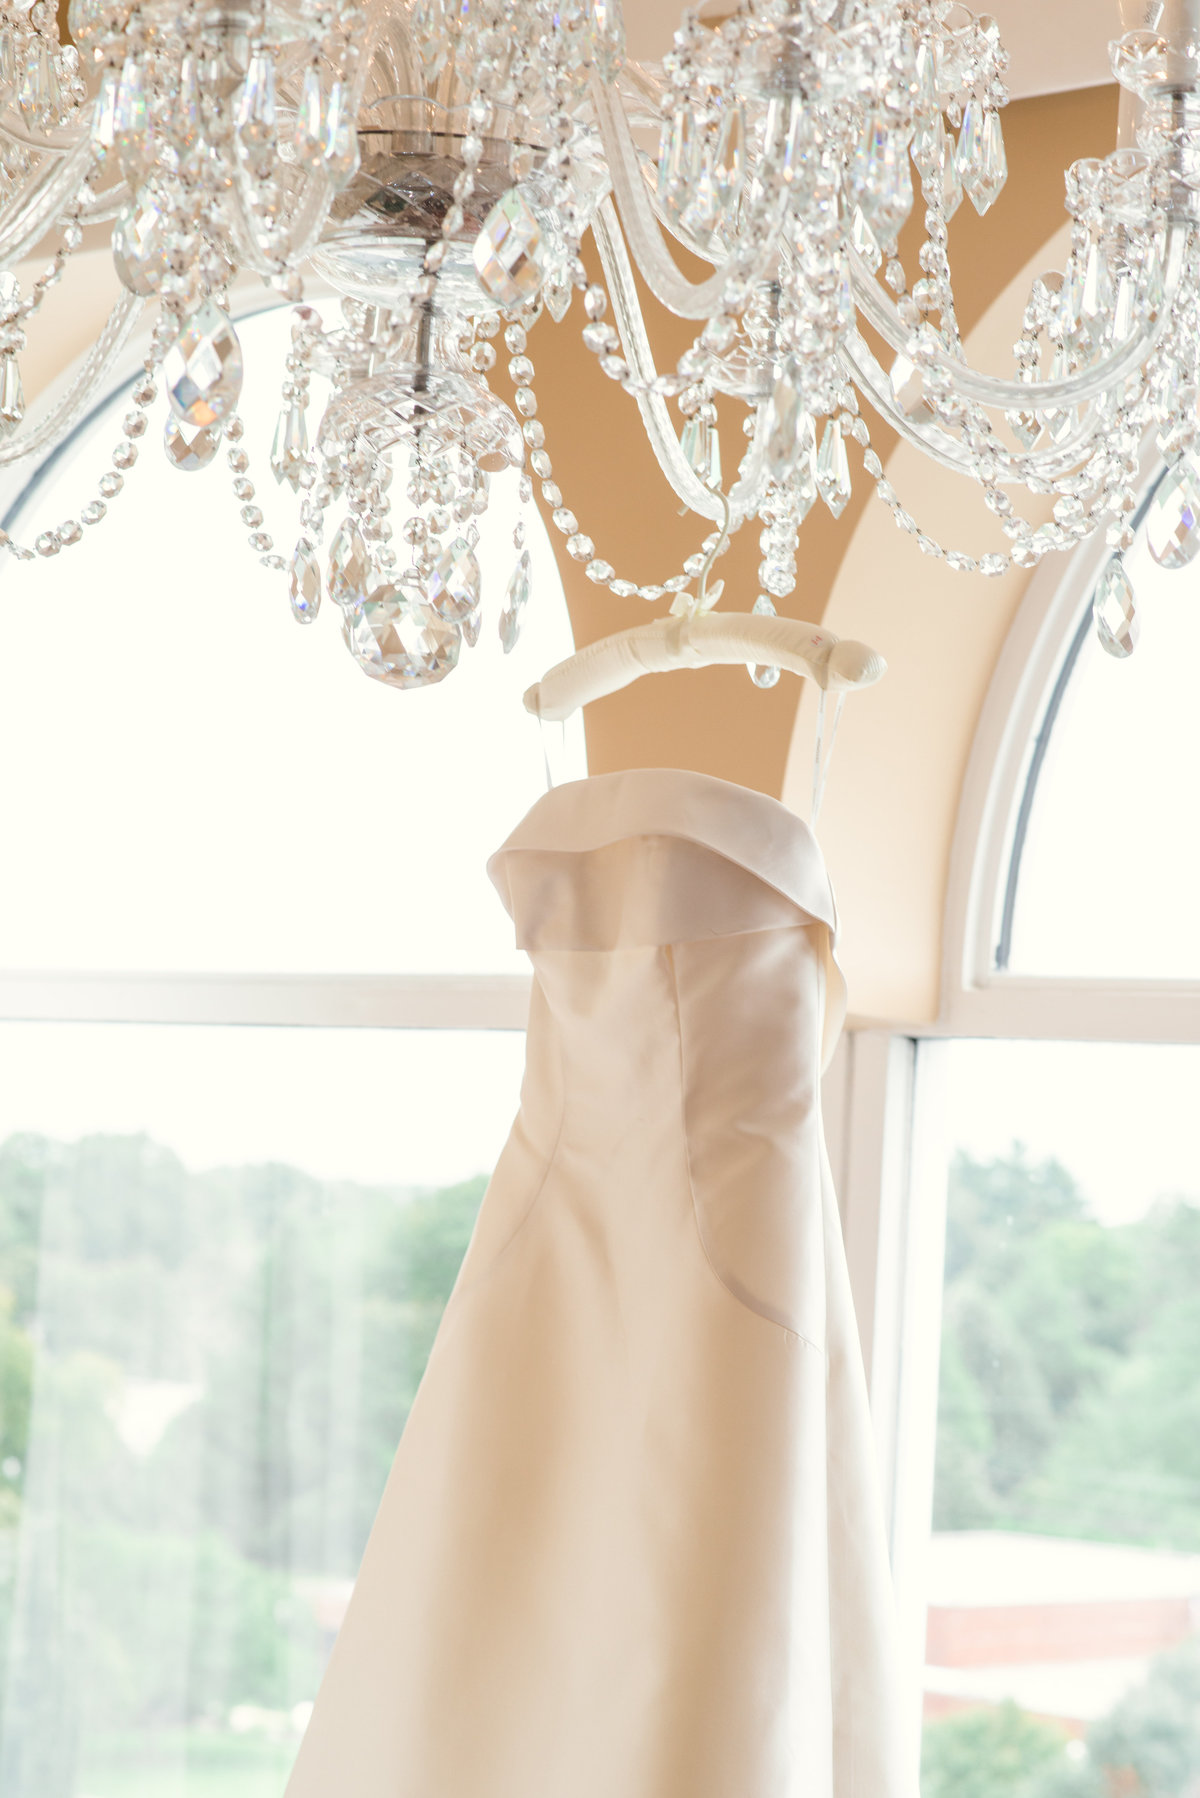 photo of bridal gown hanging on chandelier from inside The Garden City Hotel